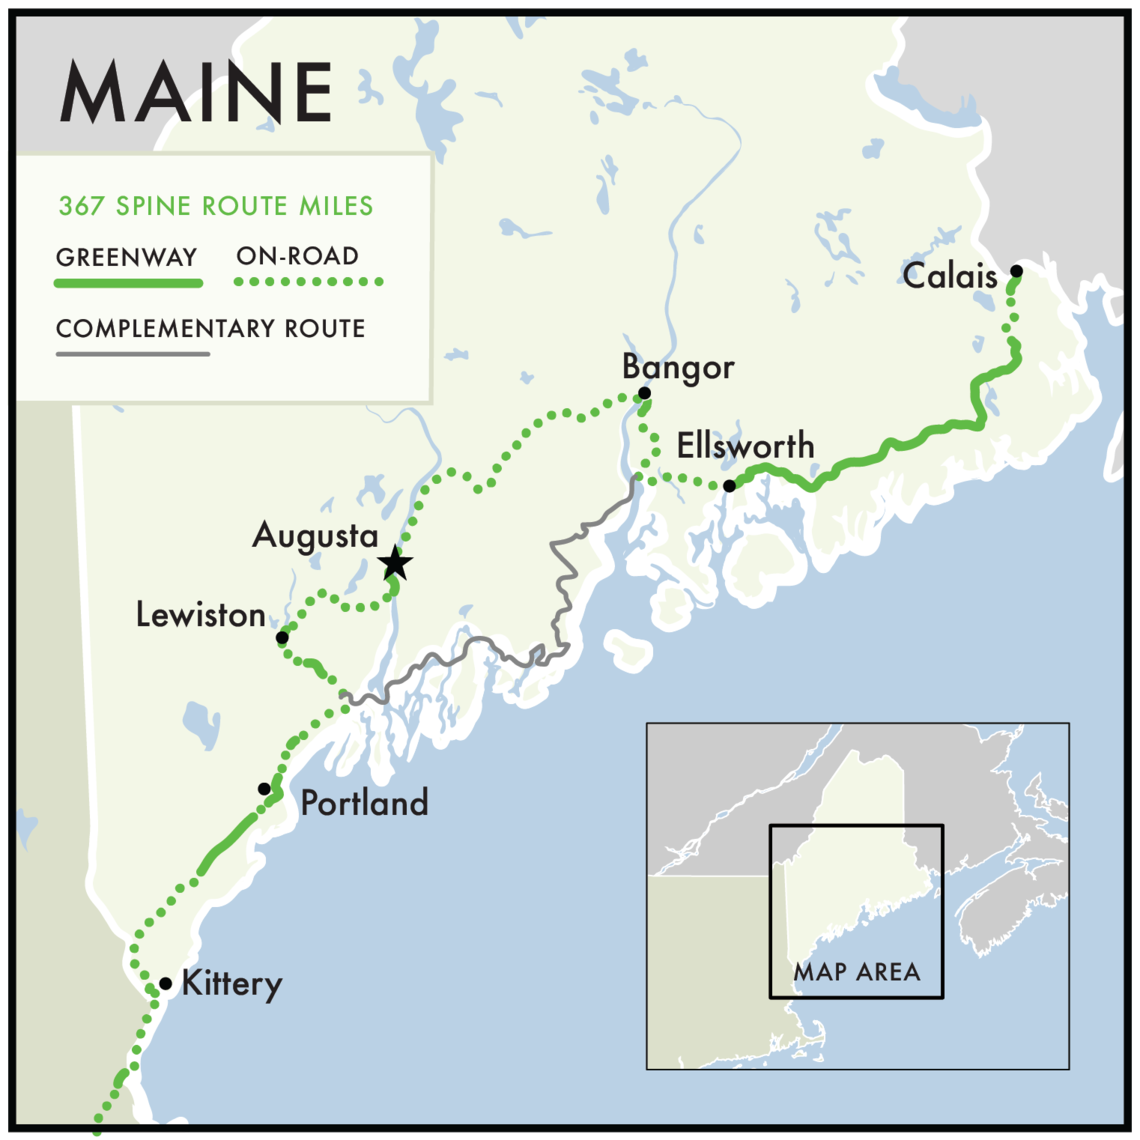 Greenway through Maine